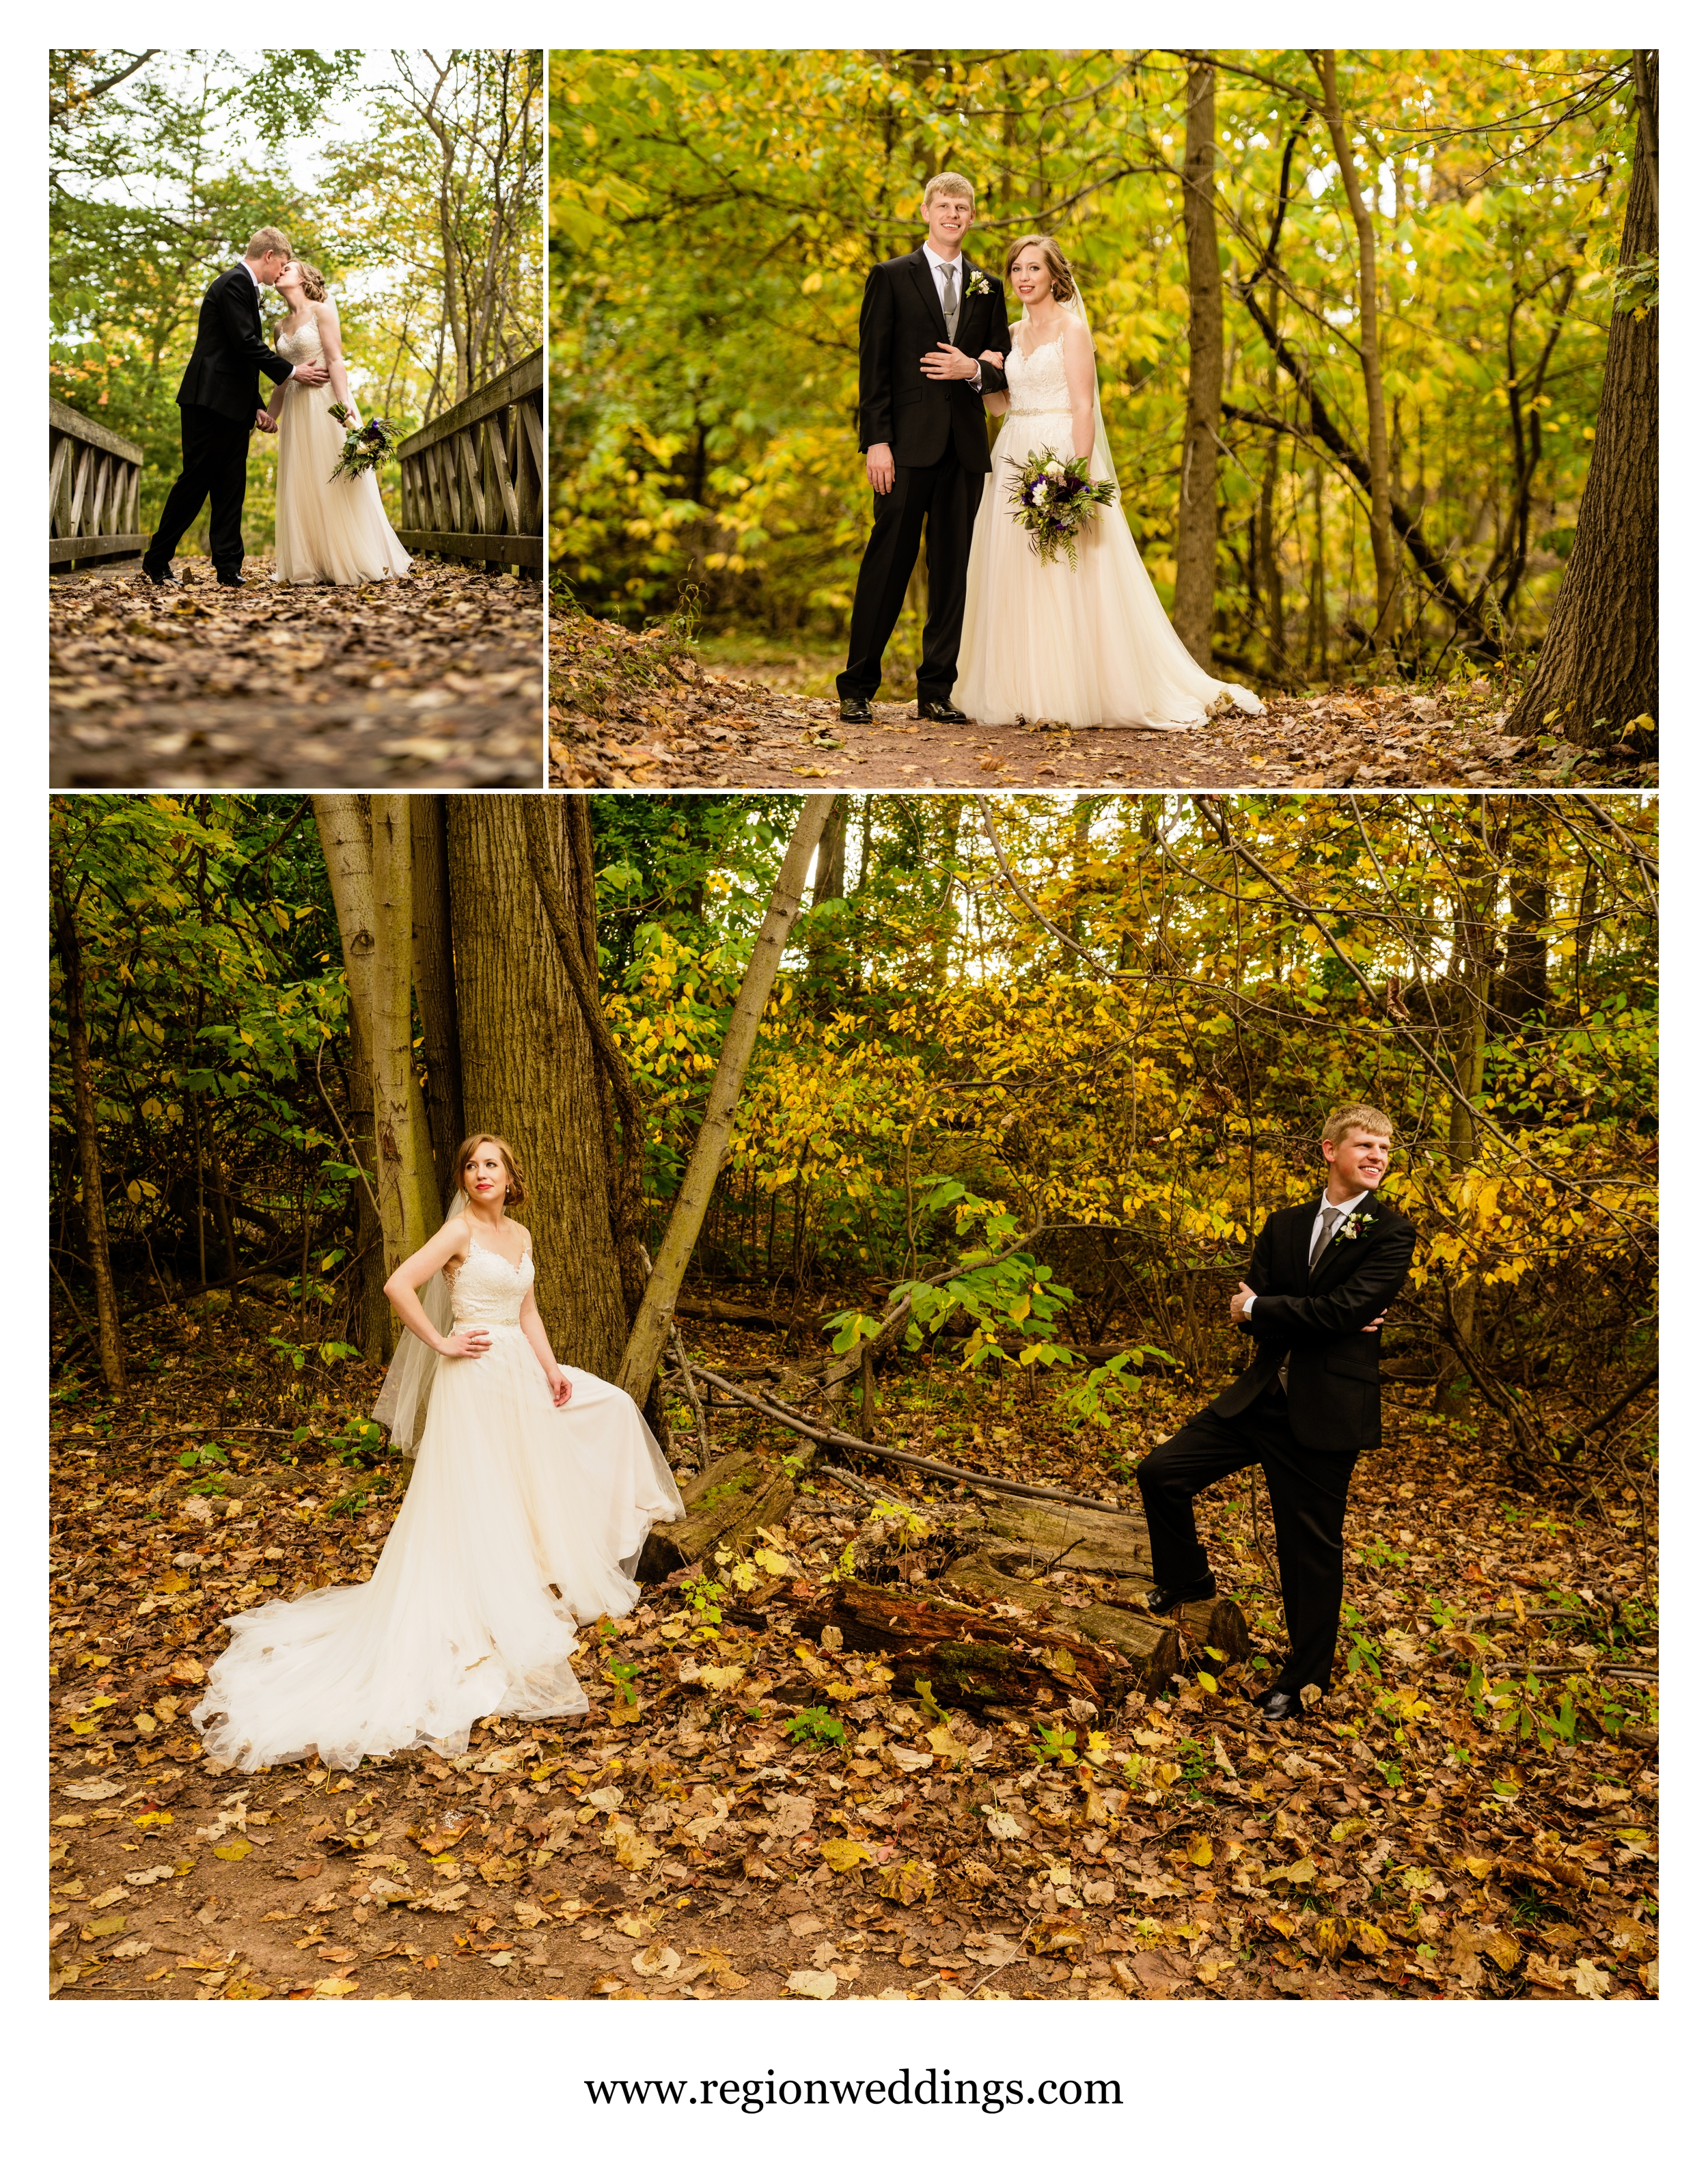 The bride and groom surrounded by golden Fall color.